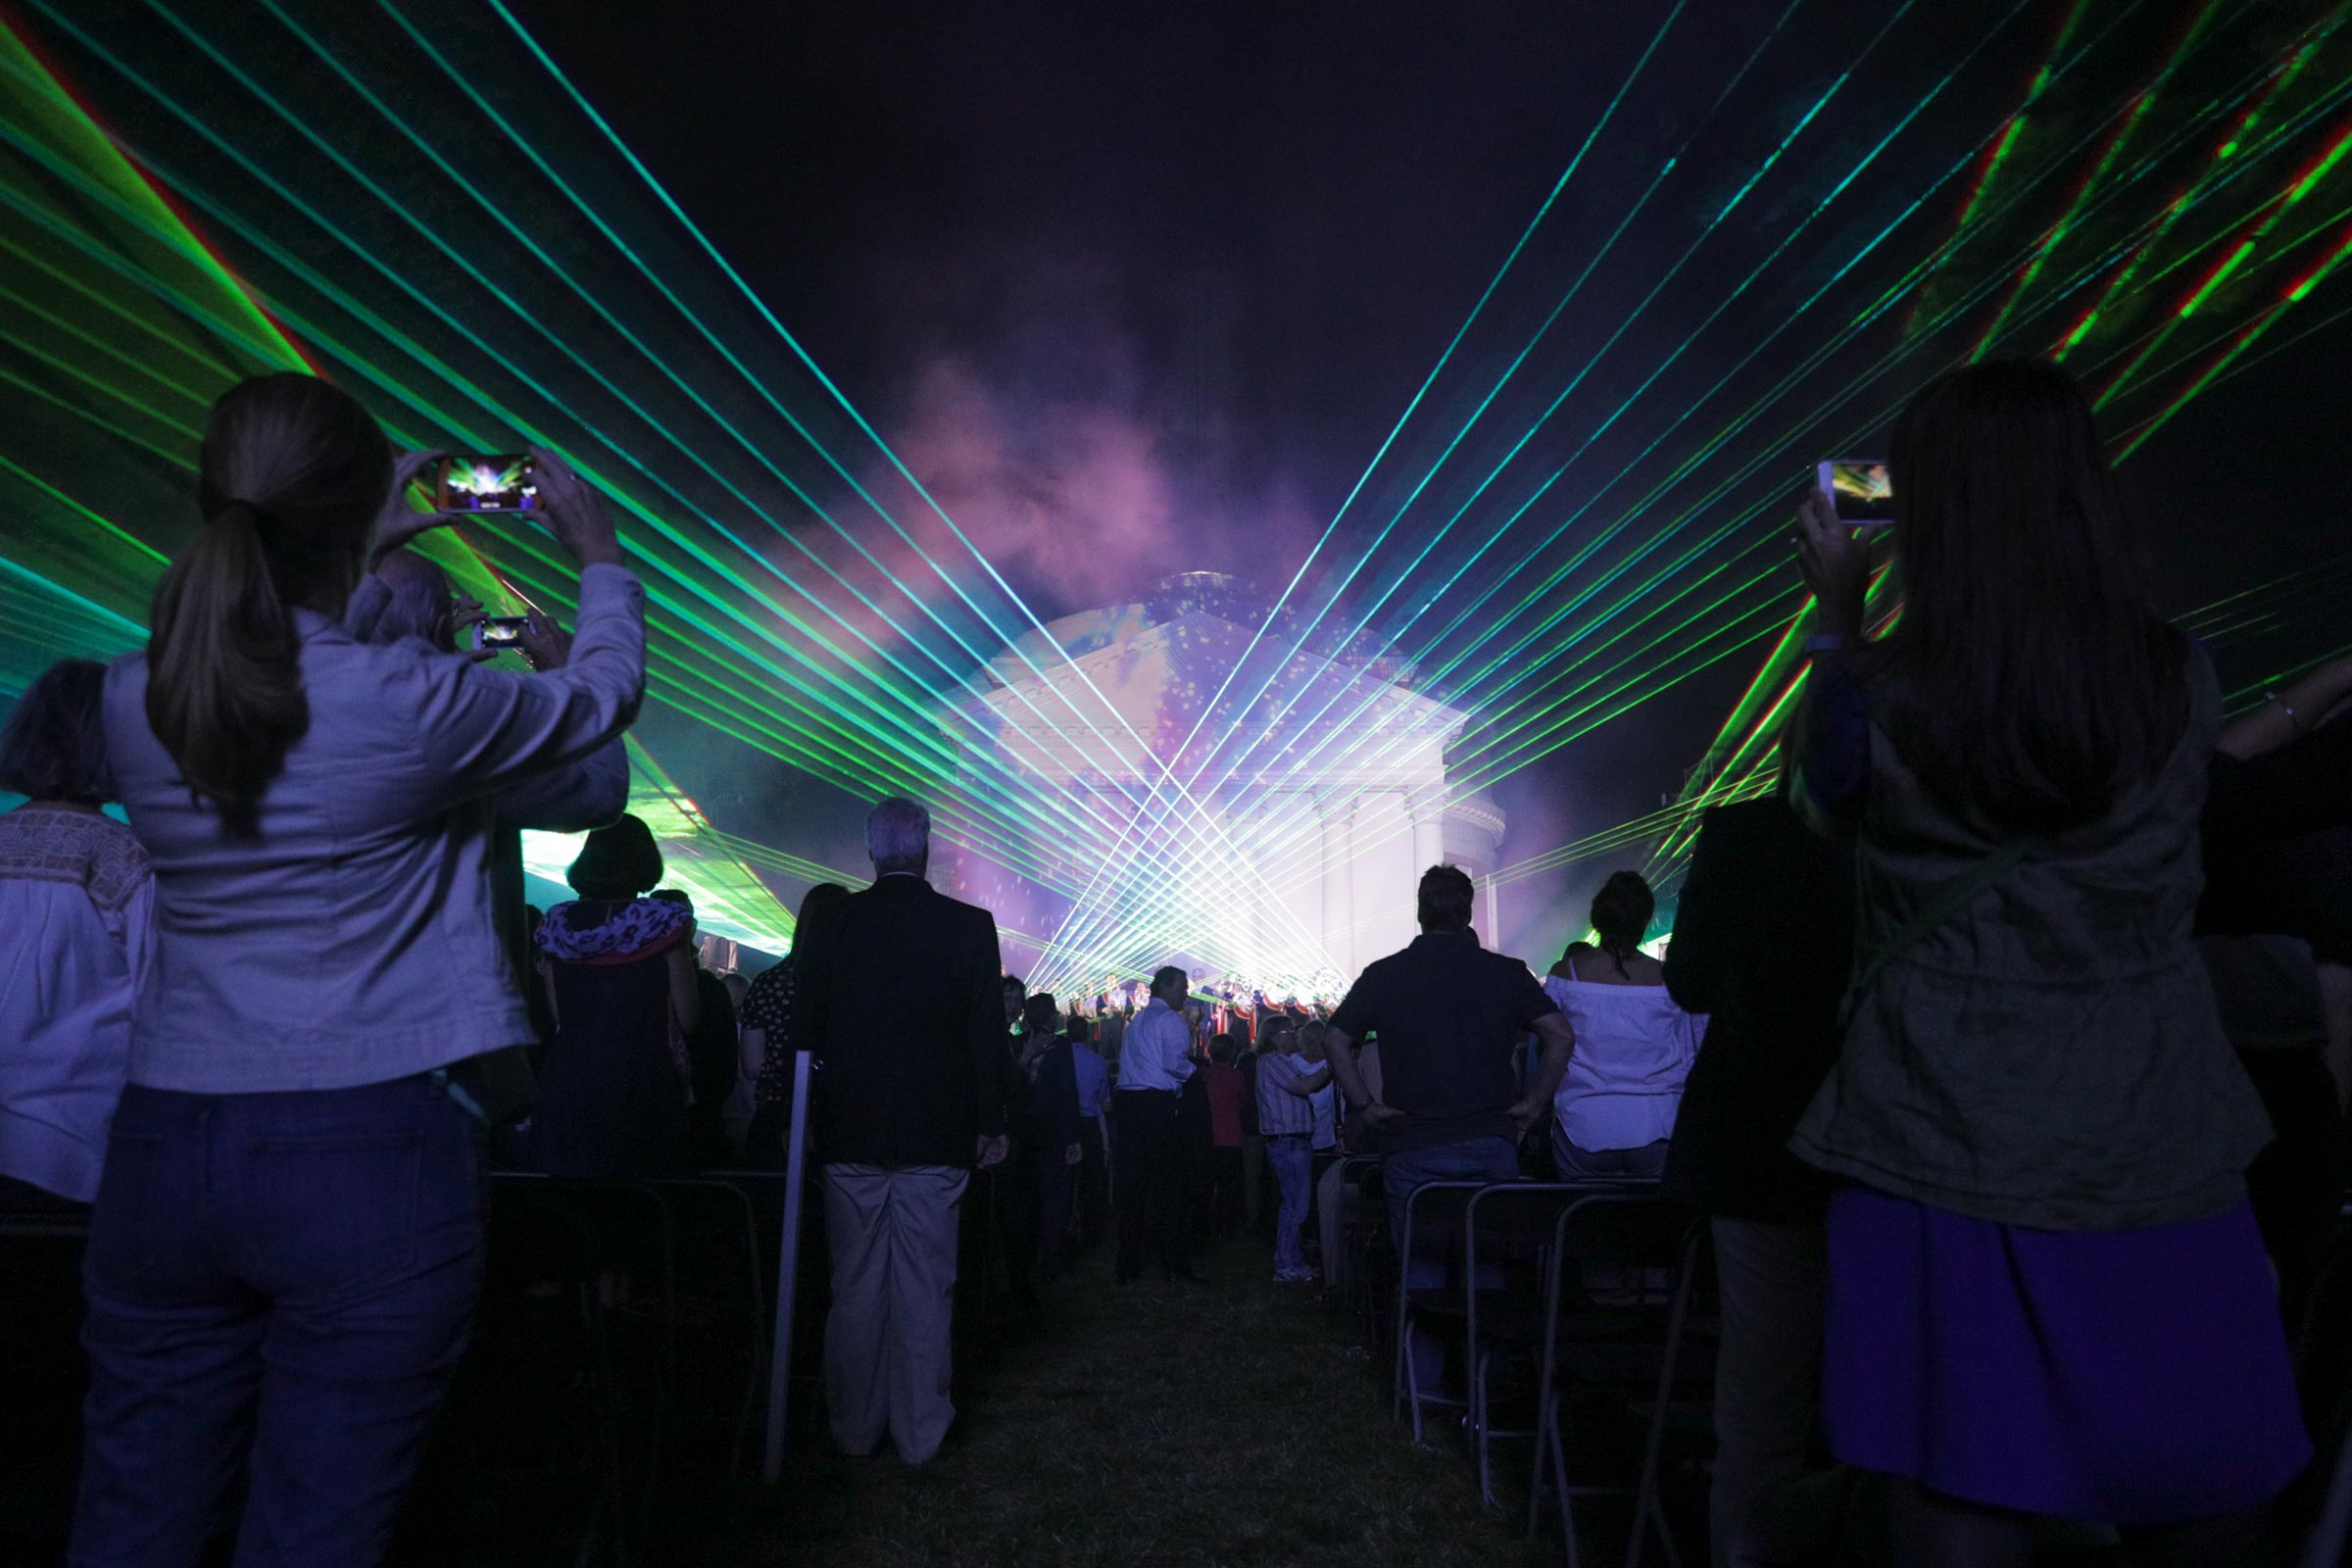 The Bicentennial Launch Celebration in 2017 included an impressive light show. (Photo by Sanjay Suchak, University Communications)